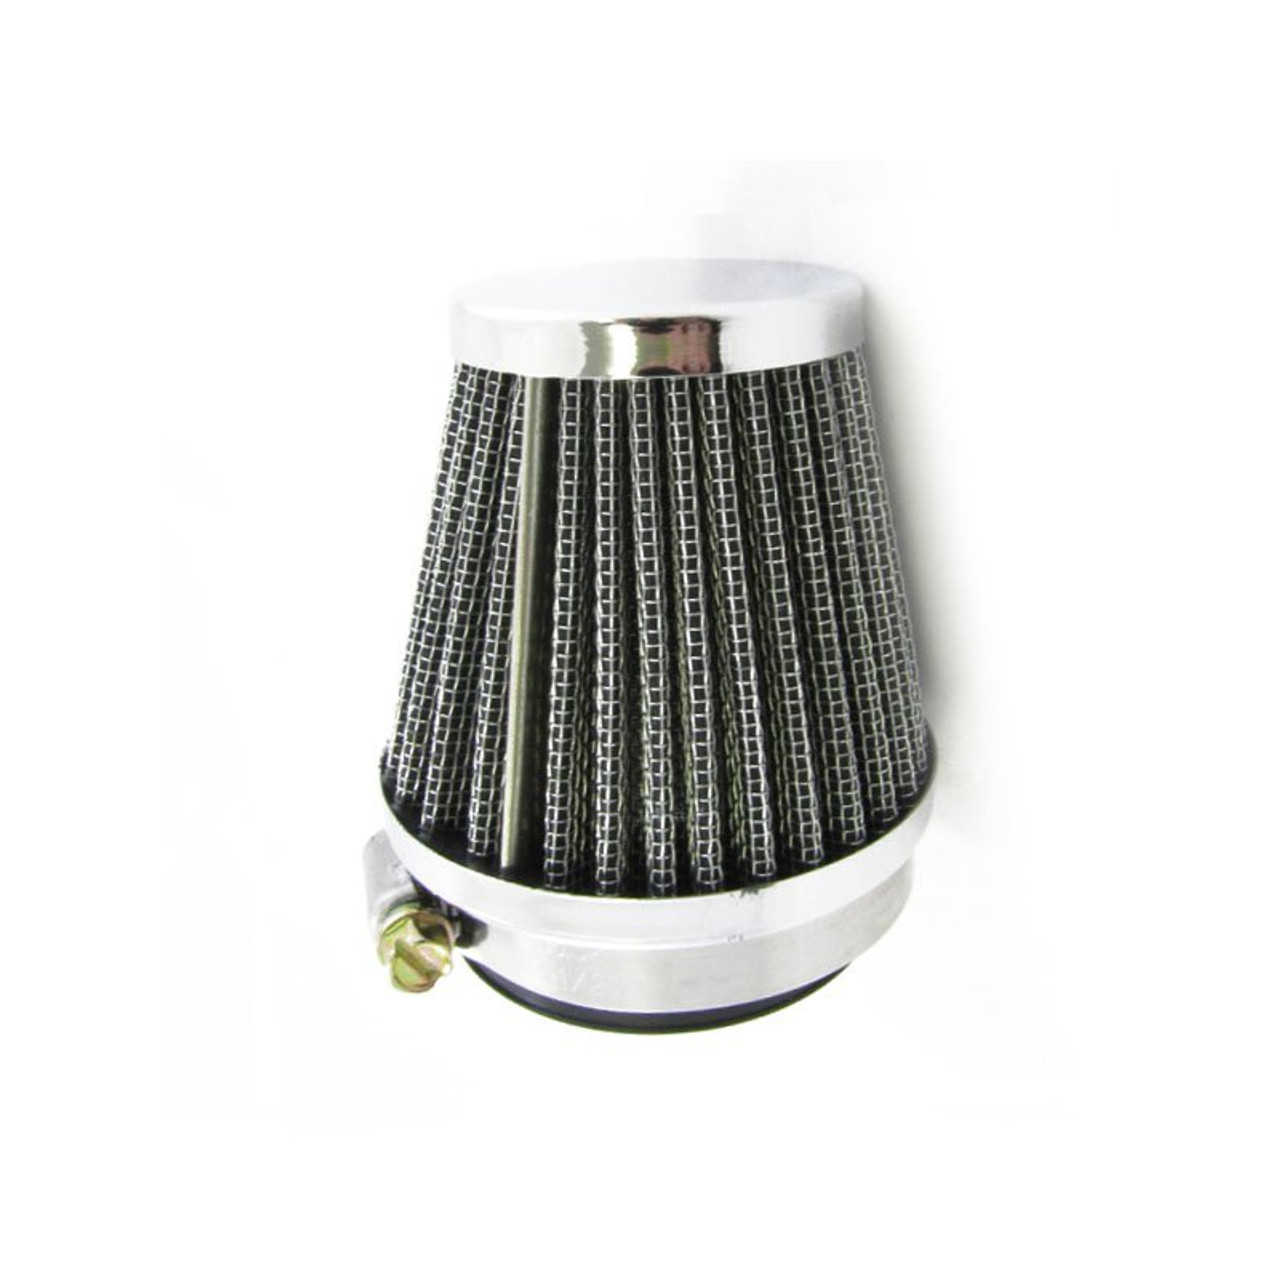 Motorcycle Round Power Pod Filter 52mm  - Free NZ Shipping